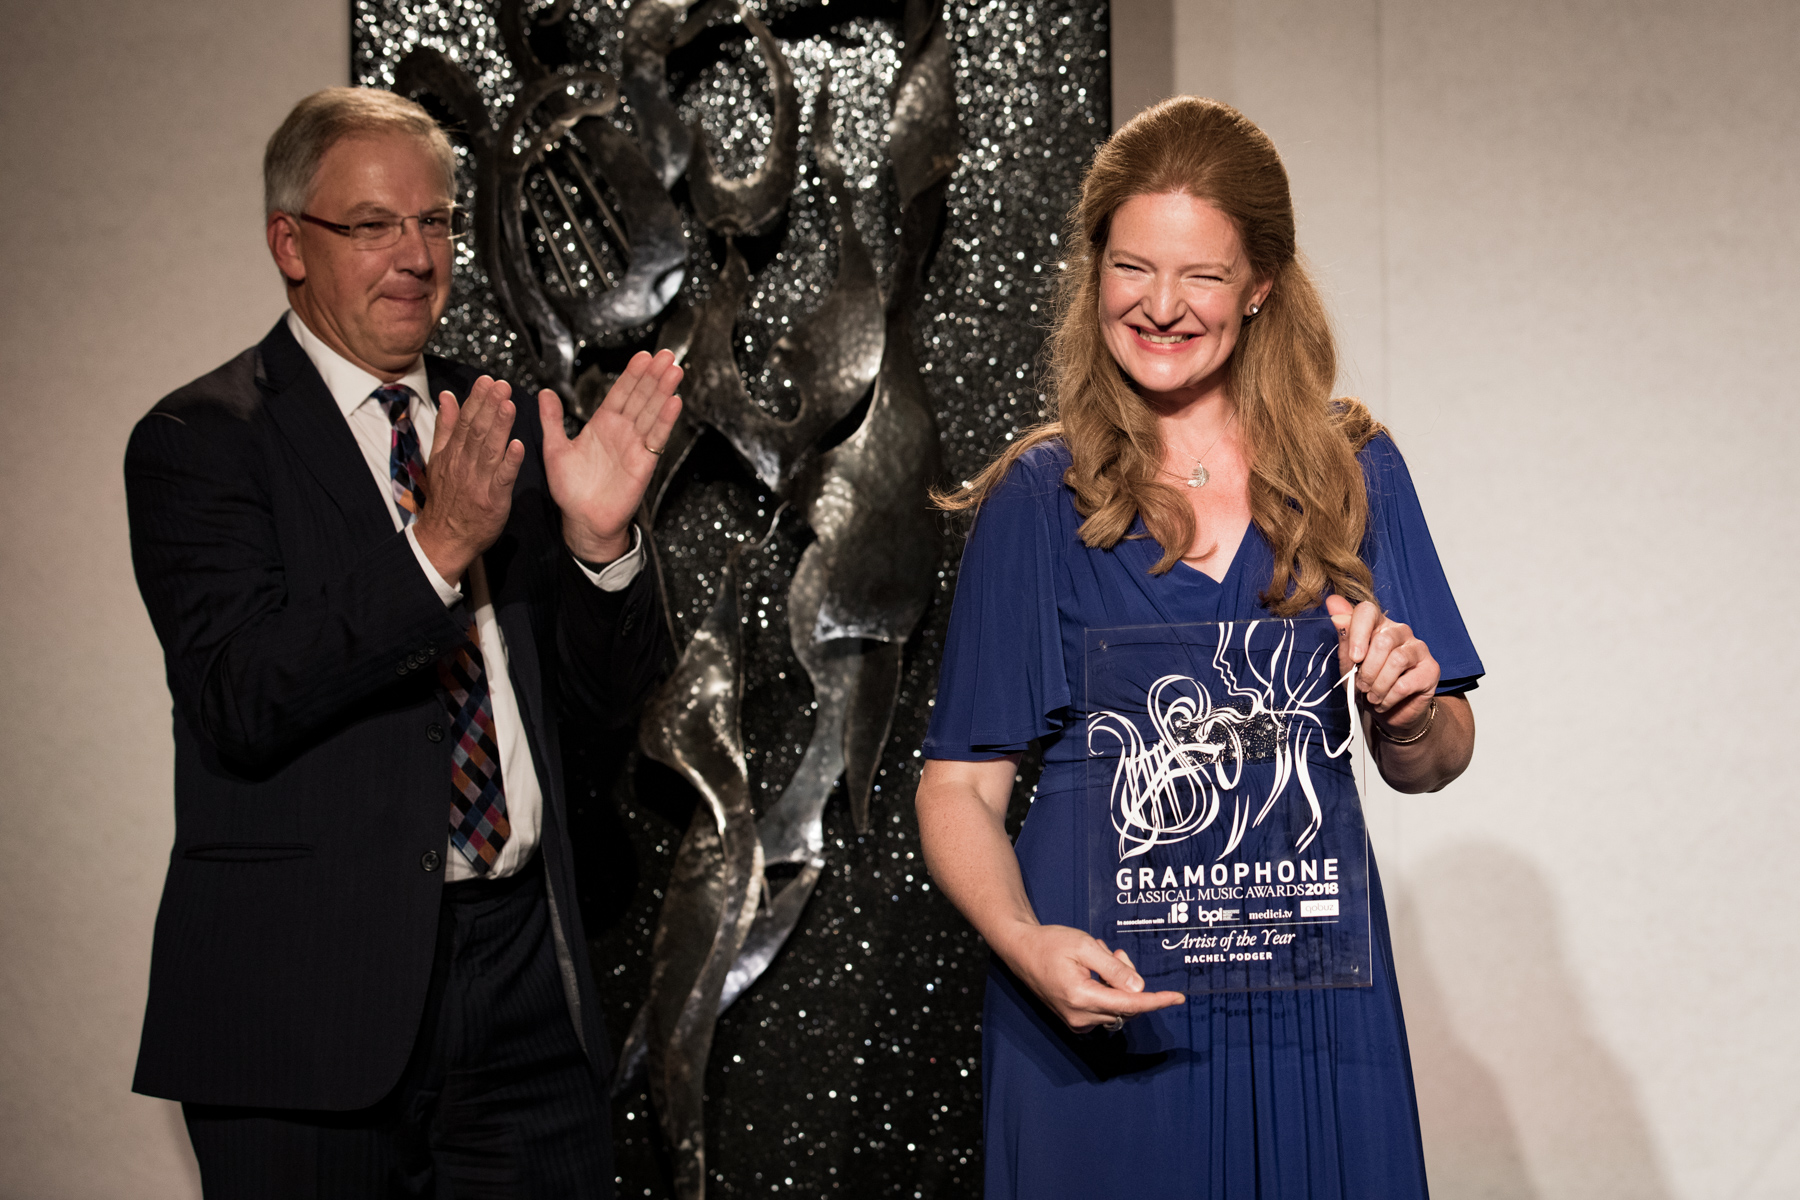 Rachel Podger receives her Artist of the Year Award from Jonathan Freeman-Attwood